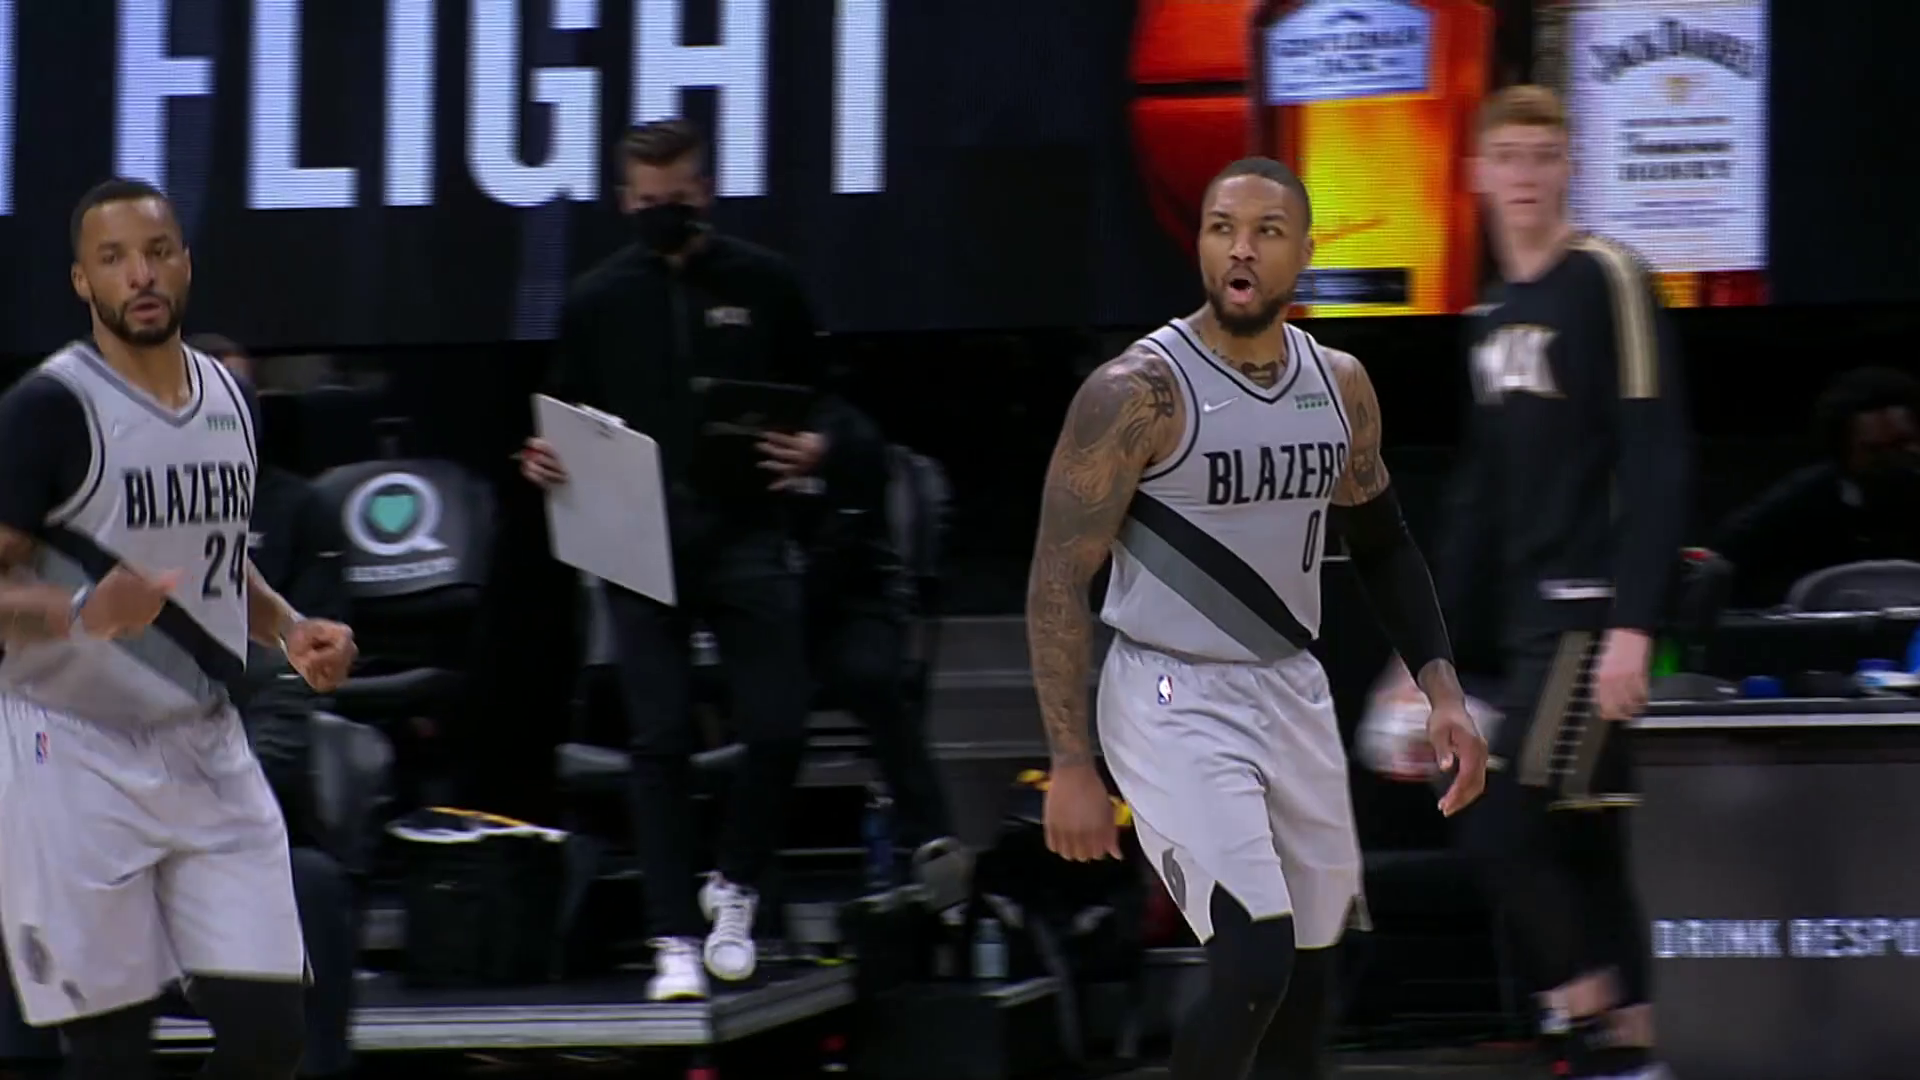 Powell and Lillard hit back-to-back threes